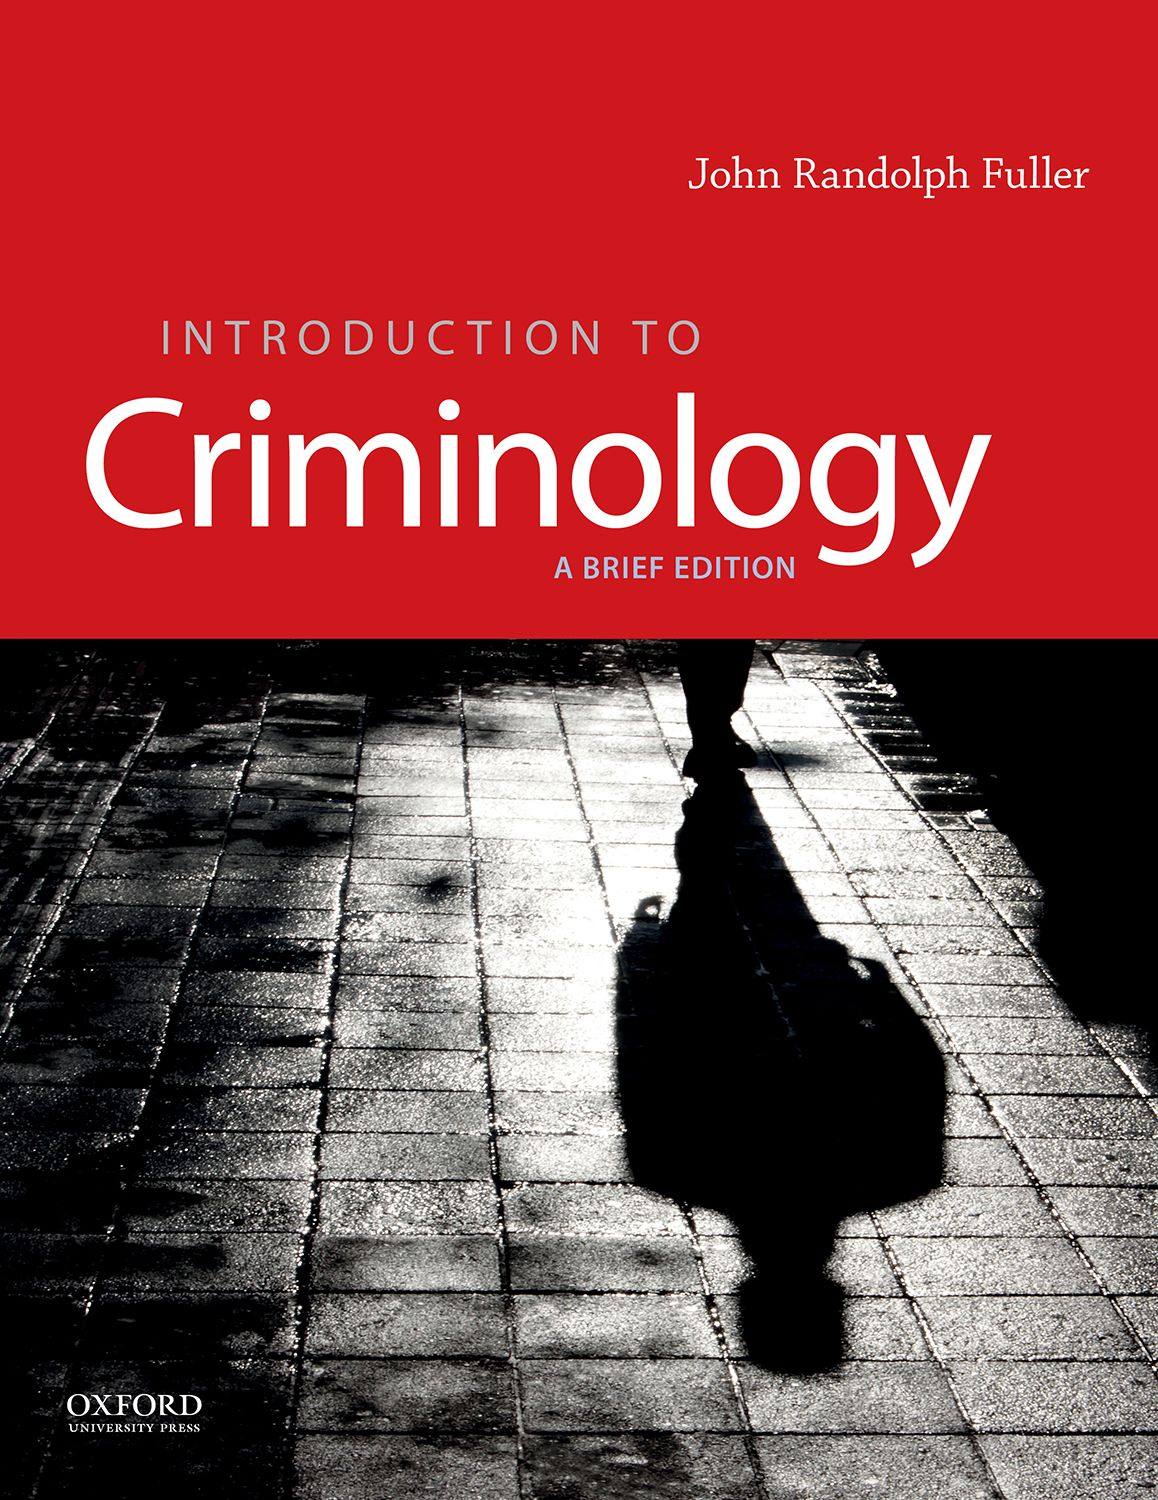 Introduction to Criminology: A Brief Edition Instructor Resources